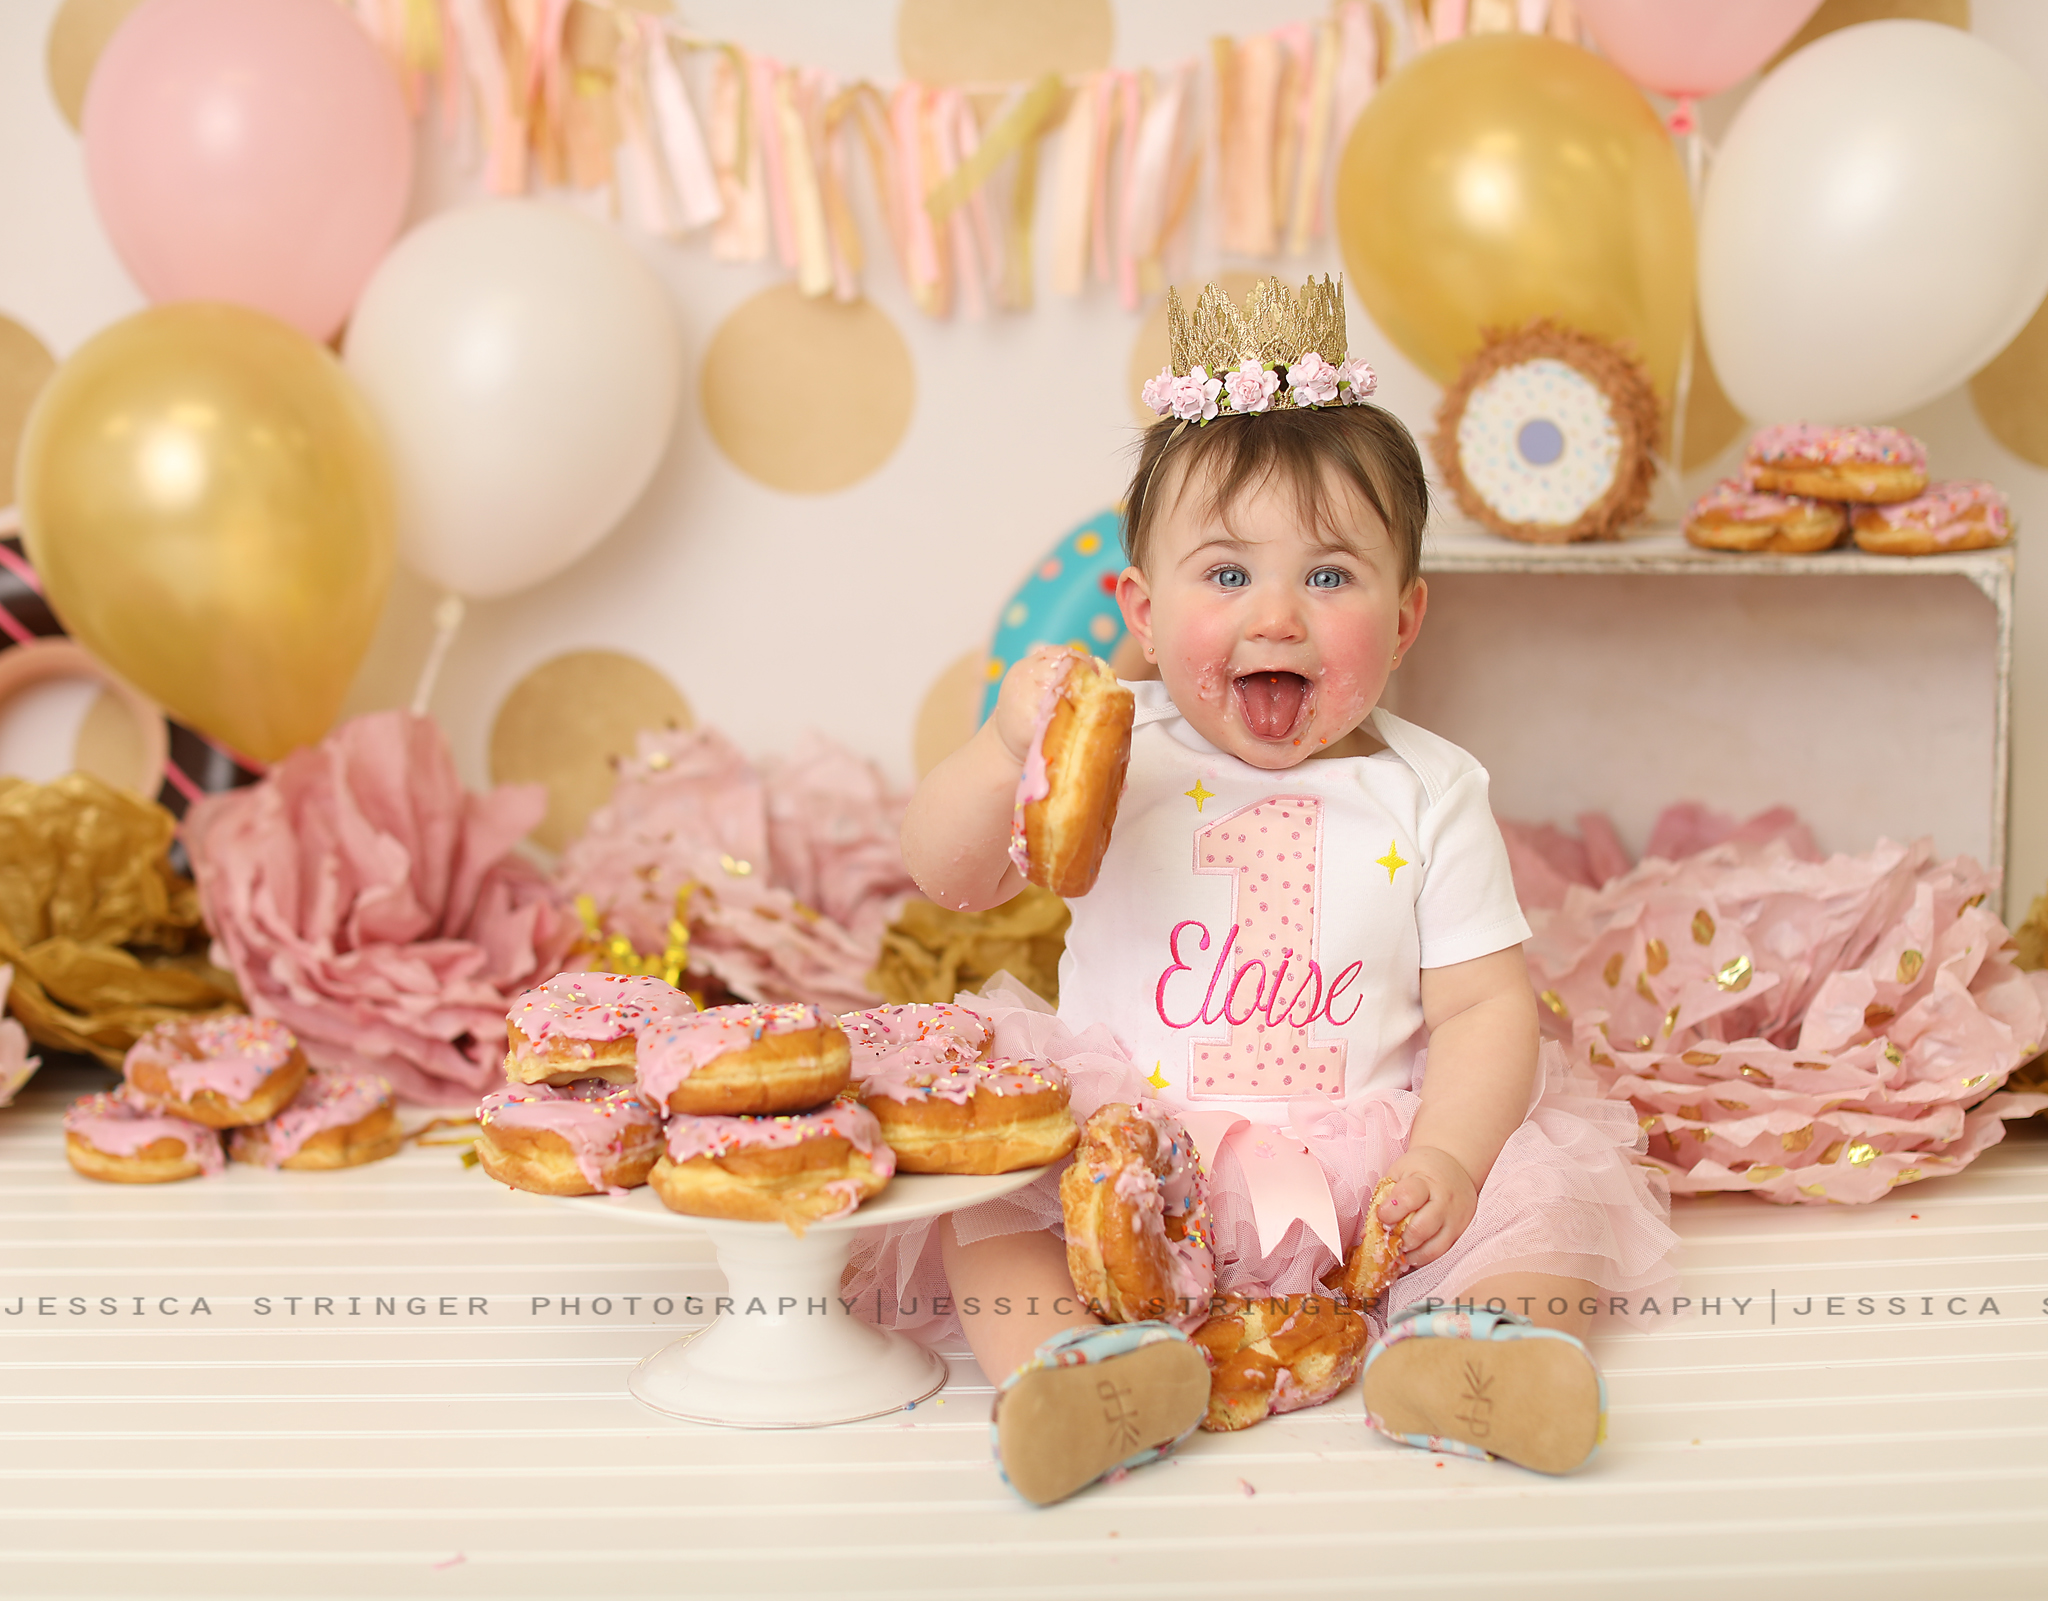 Loooved the donuts instead of a cake! Soo cute and Eloise loved them!